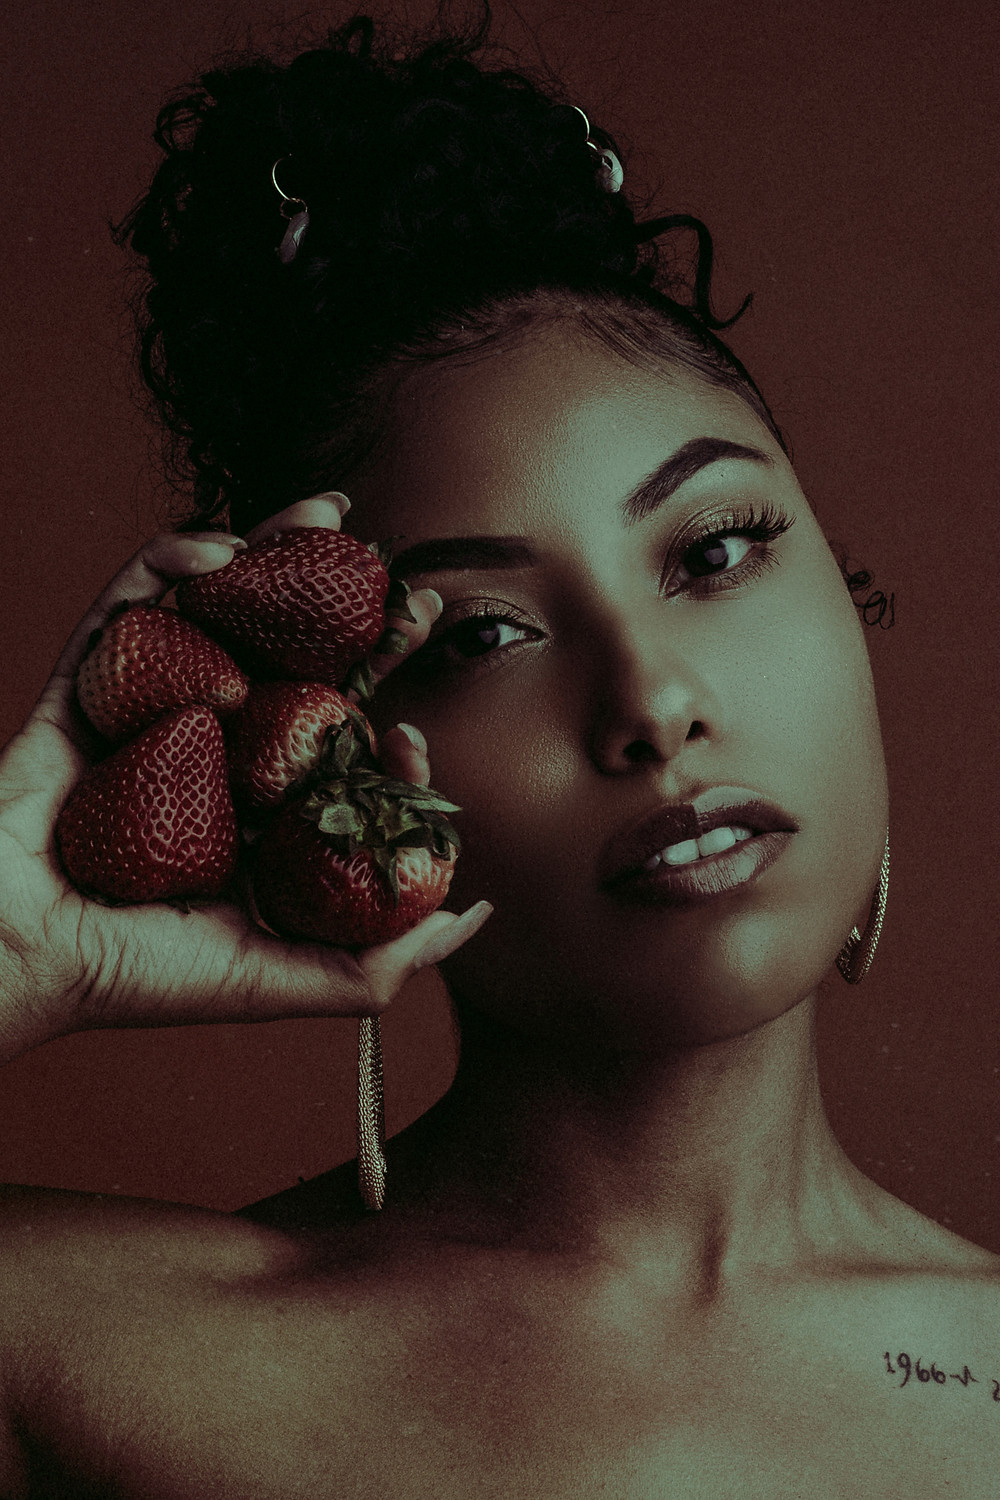 Fruit and vegetable photoshoot |  Chris Adam Taylor Photography